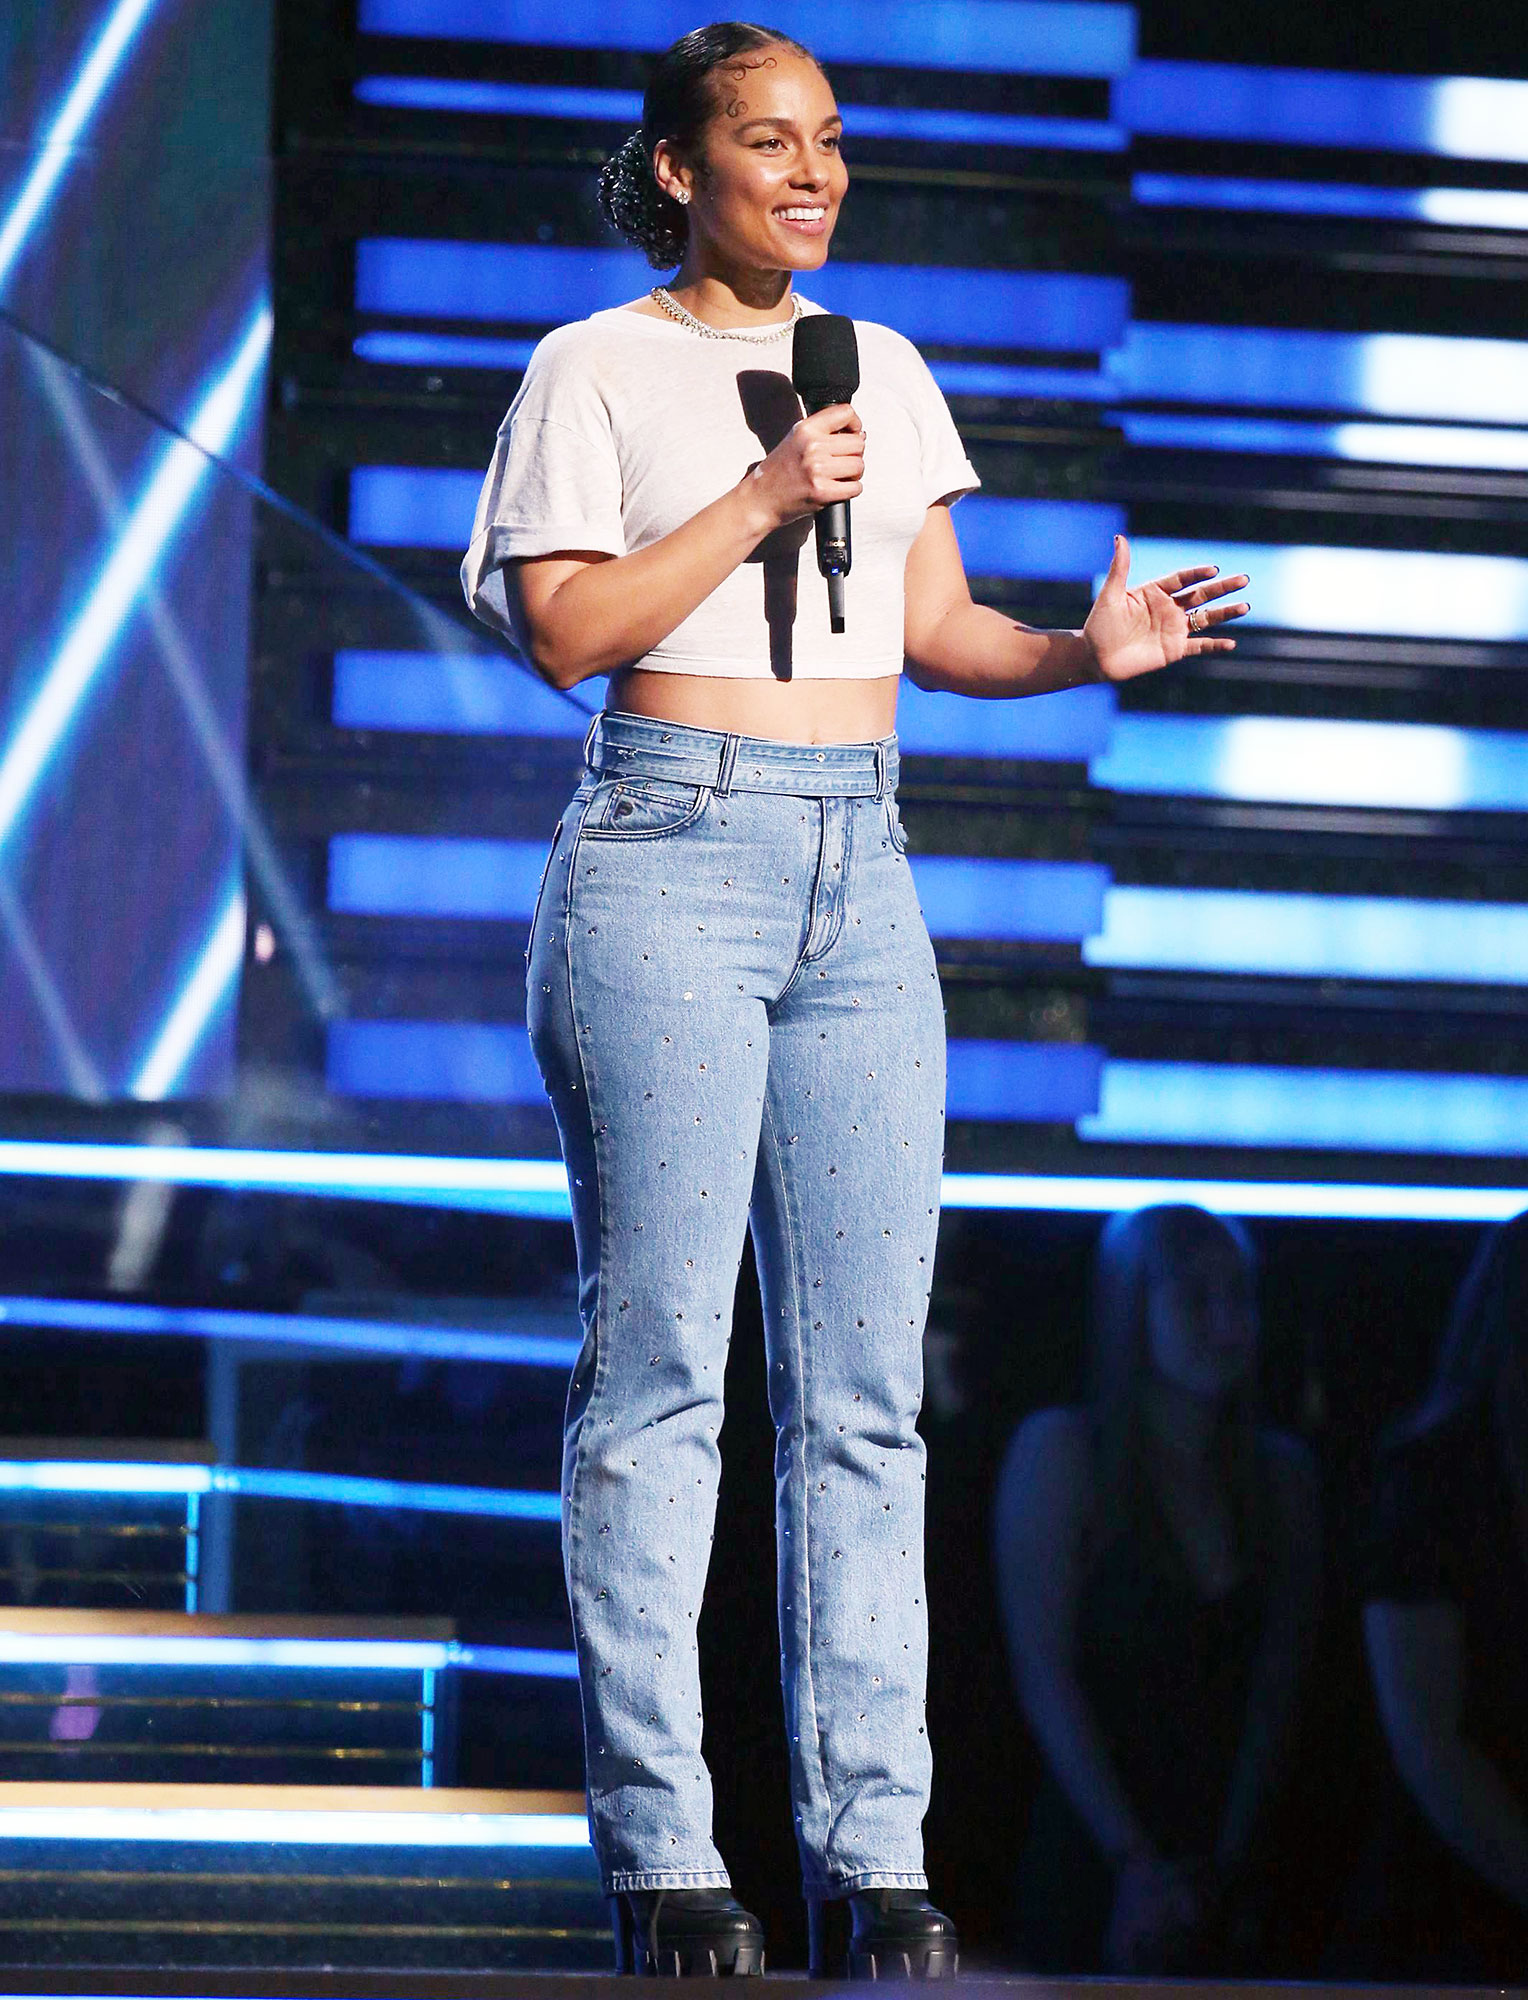 Alicia Keys' Makeup Artist Romy Soleimani Tells Us How She Nailed the Singer's Epic Grammys 2020 No-Makeup Makeup Looks Jeans and White Crop Top